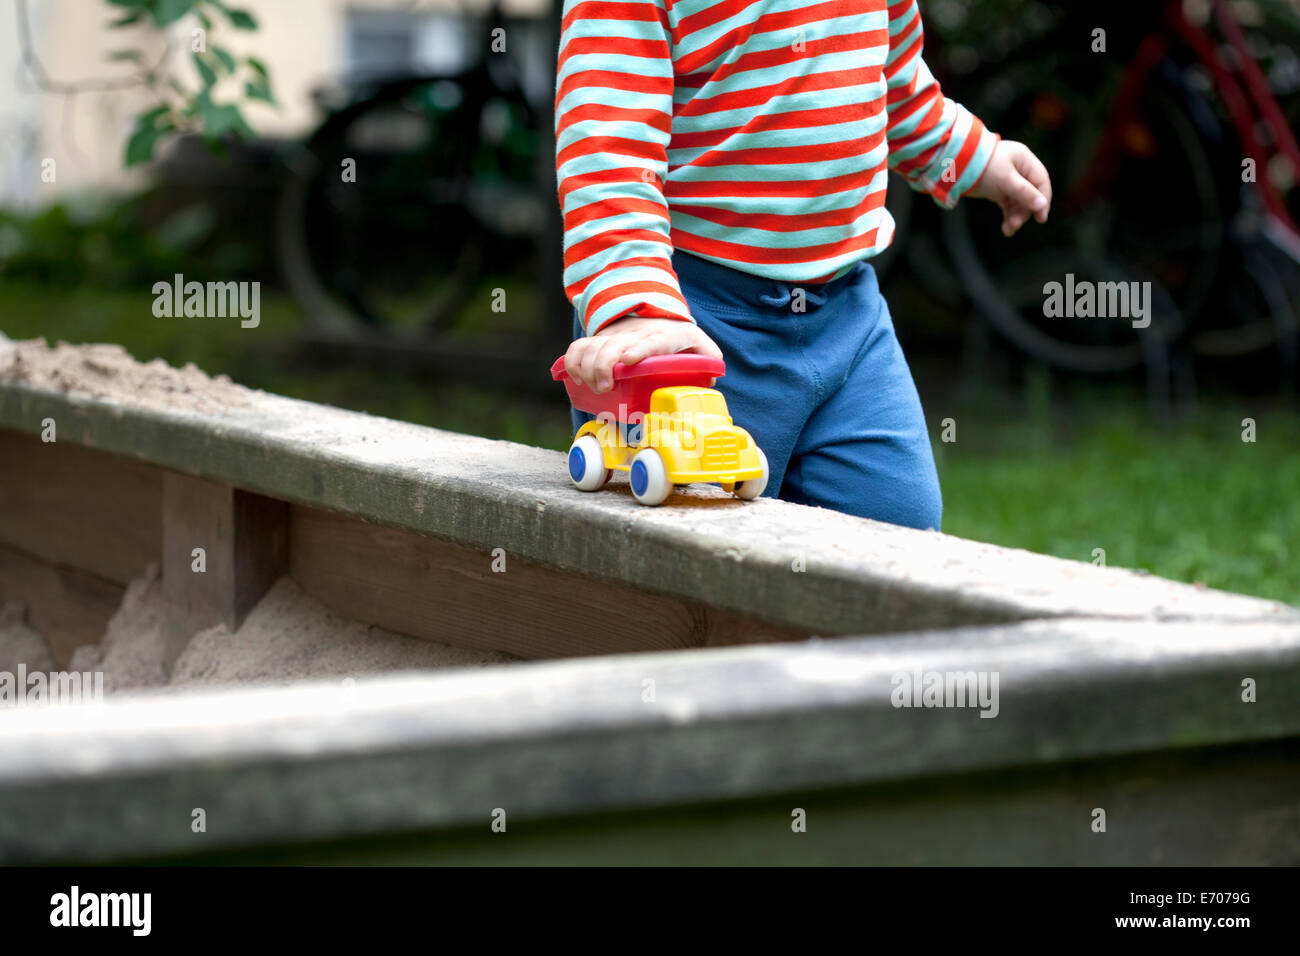 Cropped shot of male toddler pushing toy car around sand pit in garden - Stock Image